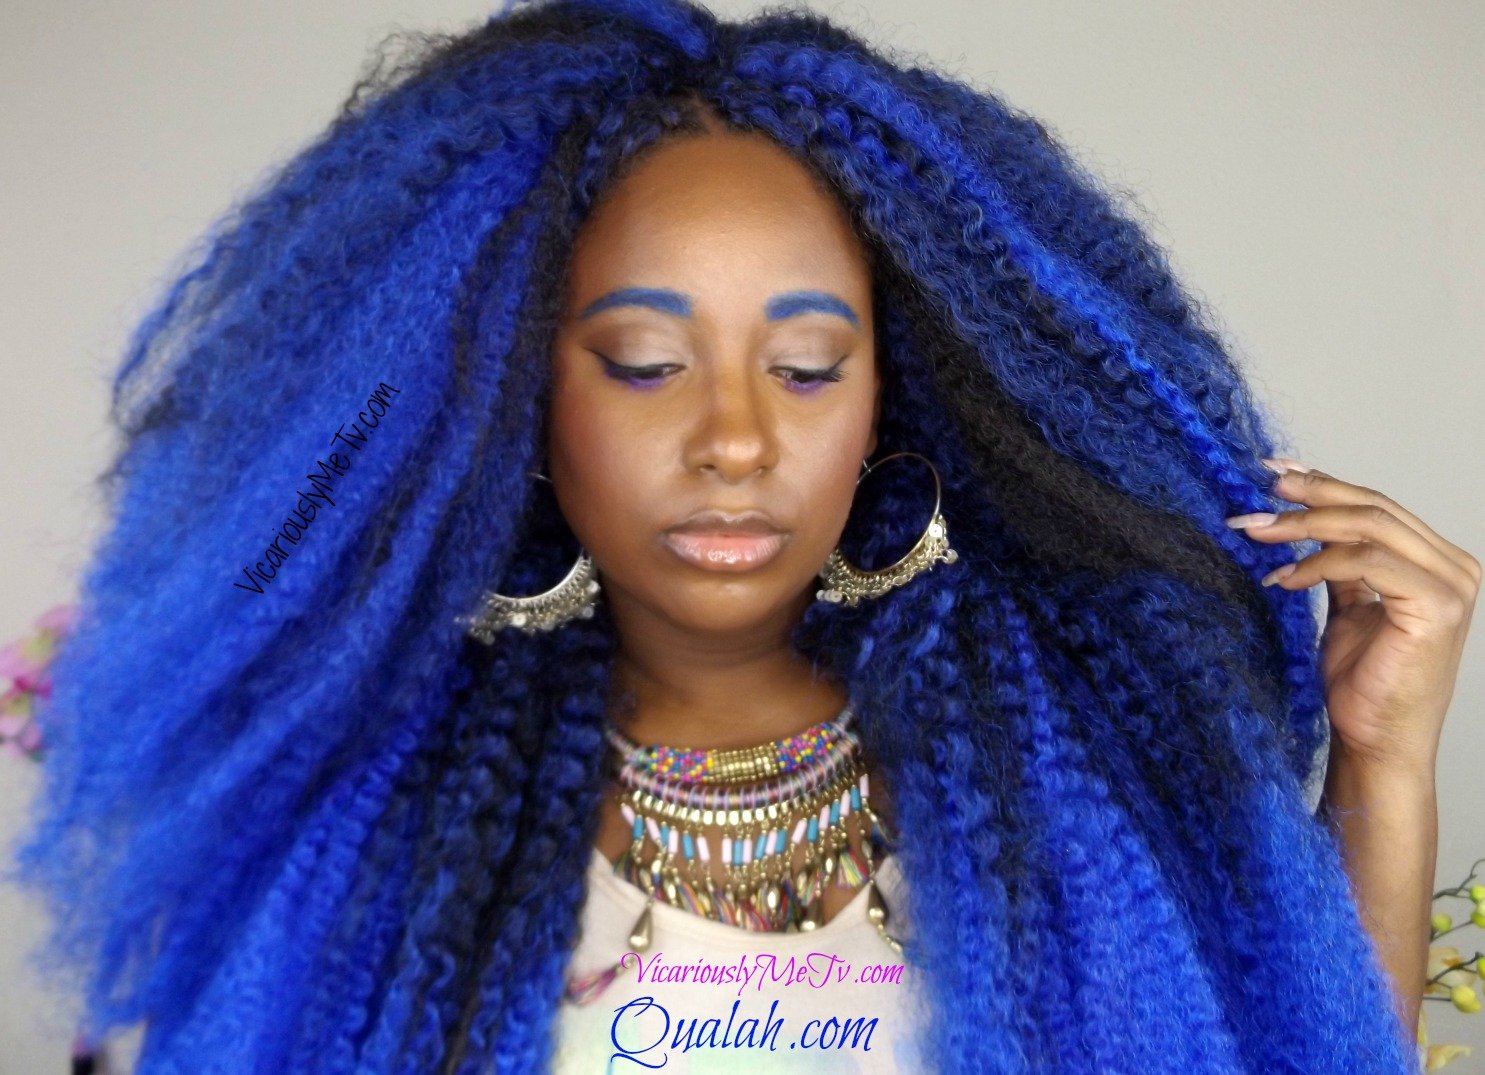 Crochet Braids Ombre Hair : How To Do Crochet Braids Blue Ombre Hair - Vicariously Me Blog ...